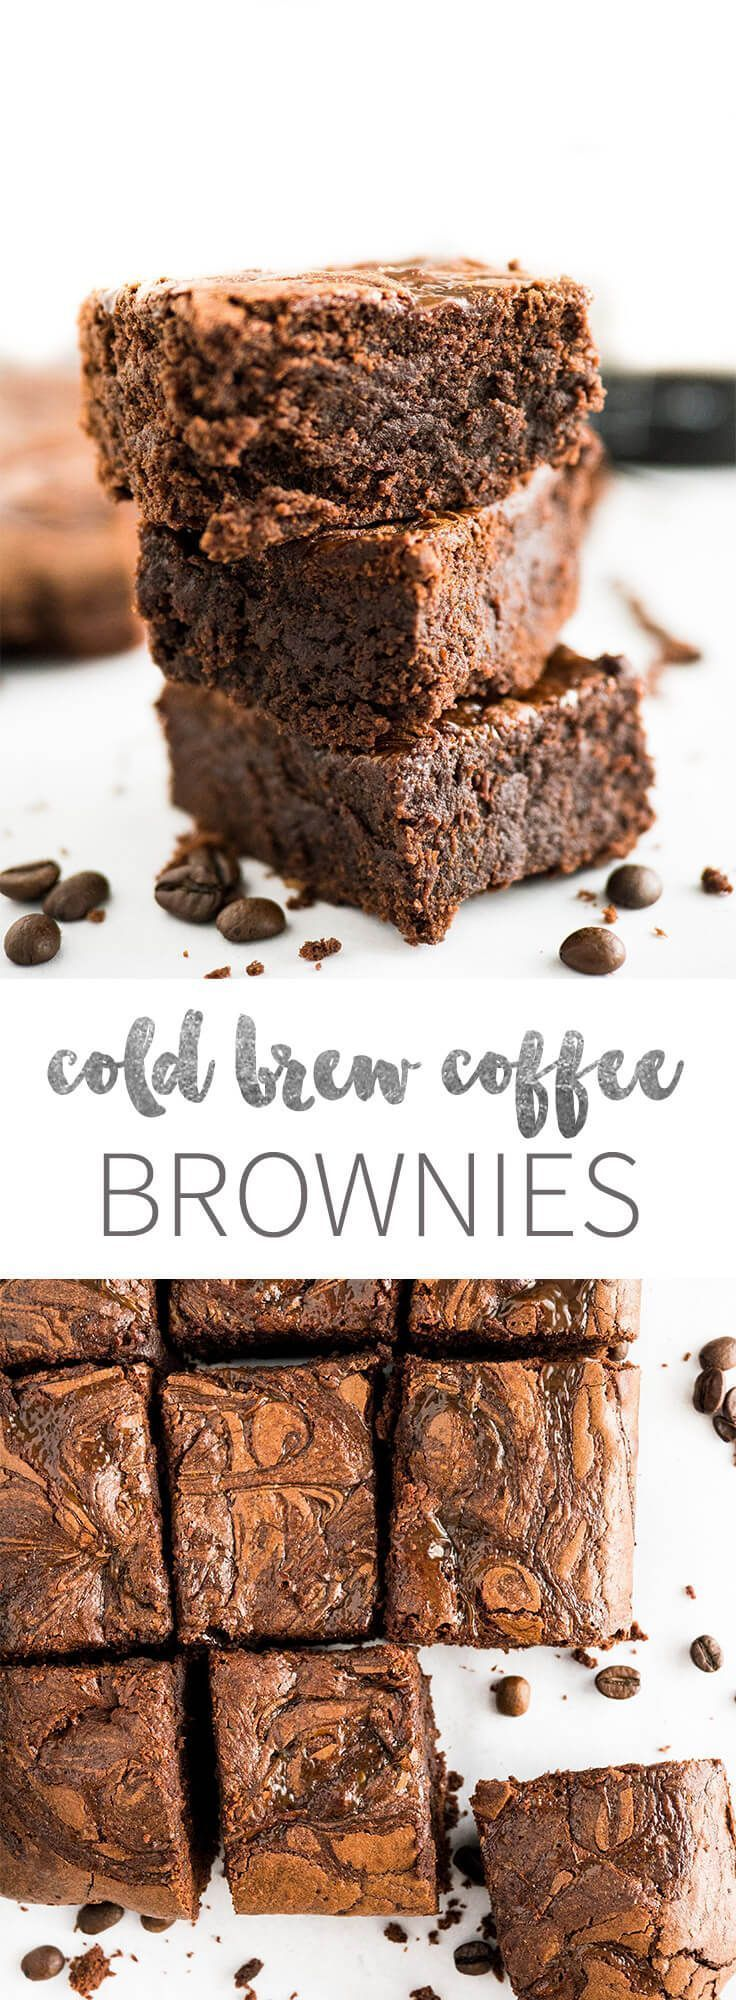 Best 25+ Cold brewed coffee ideas on Pinterest | Cold brew coffee ...